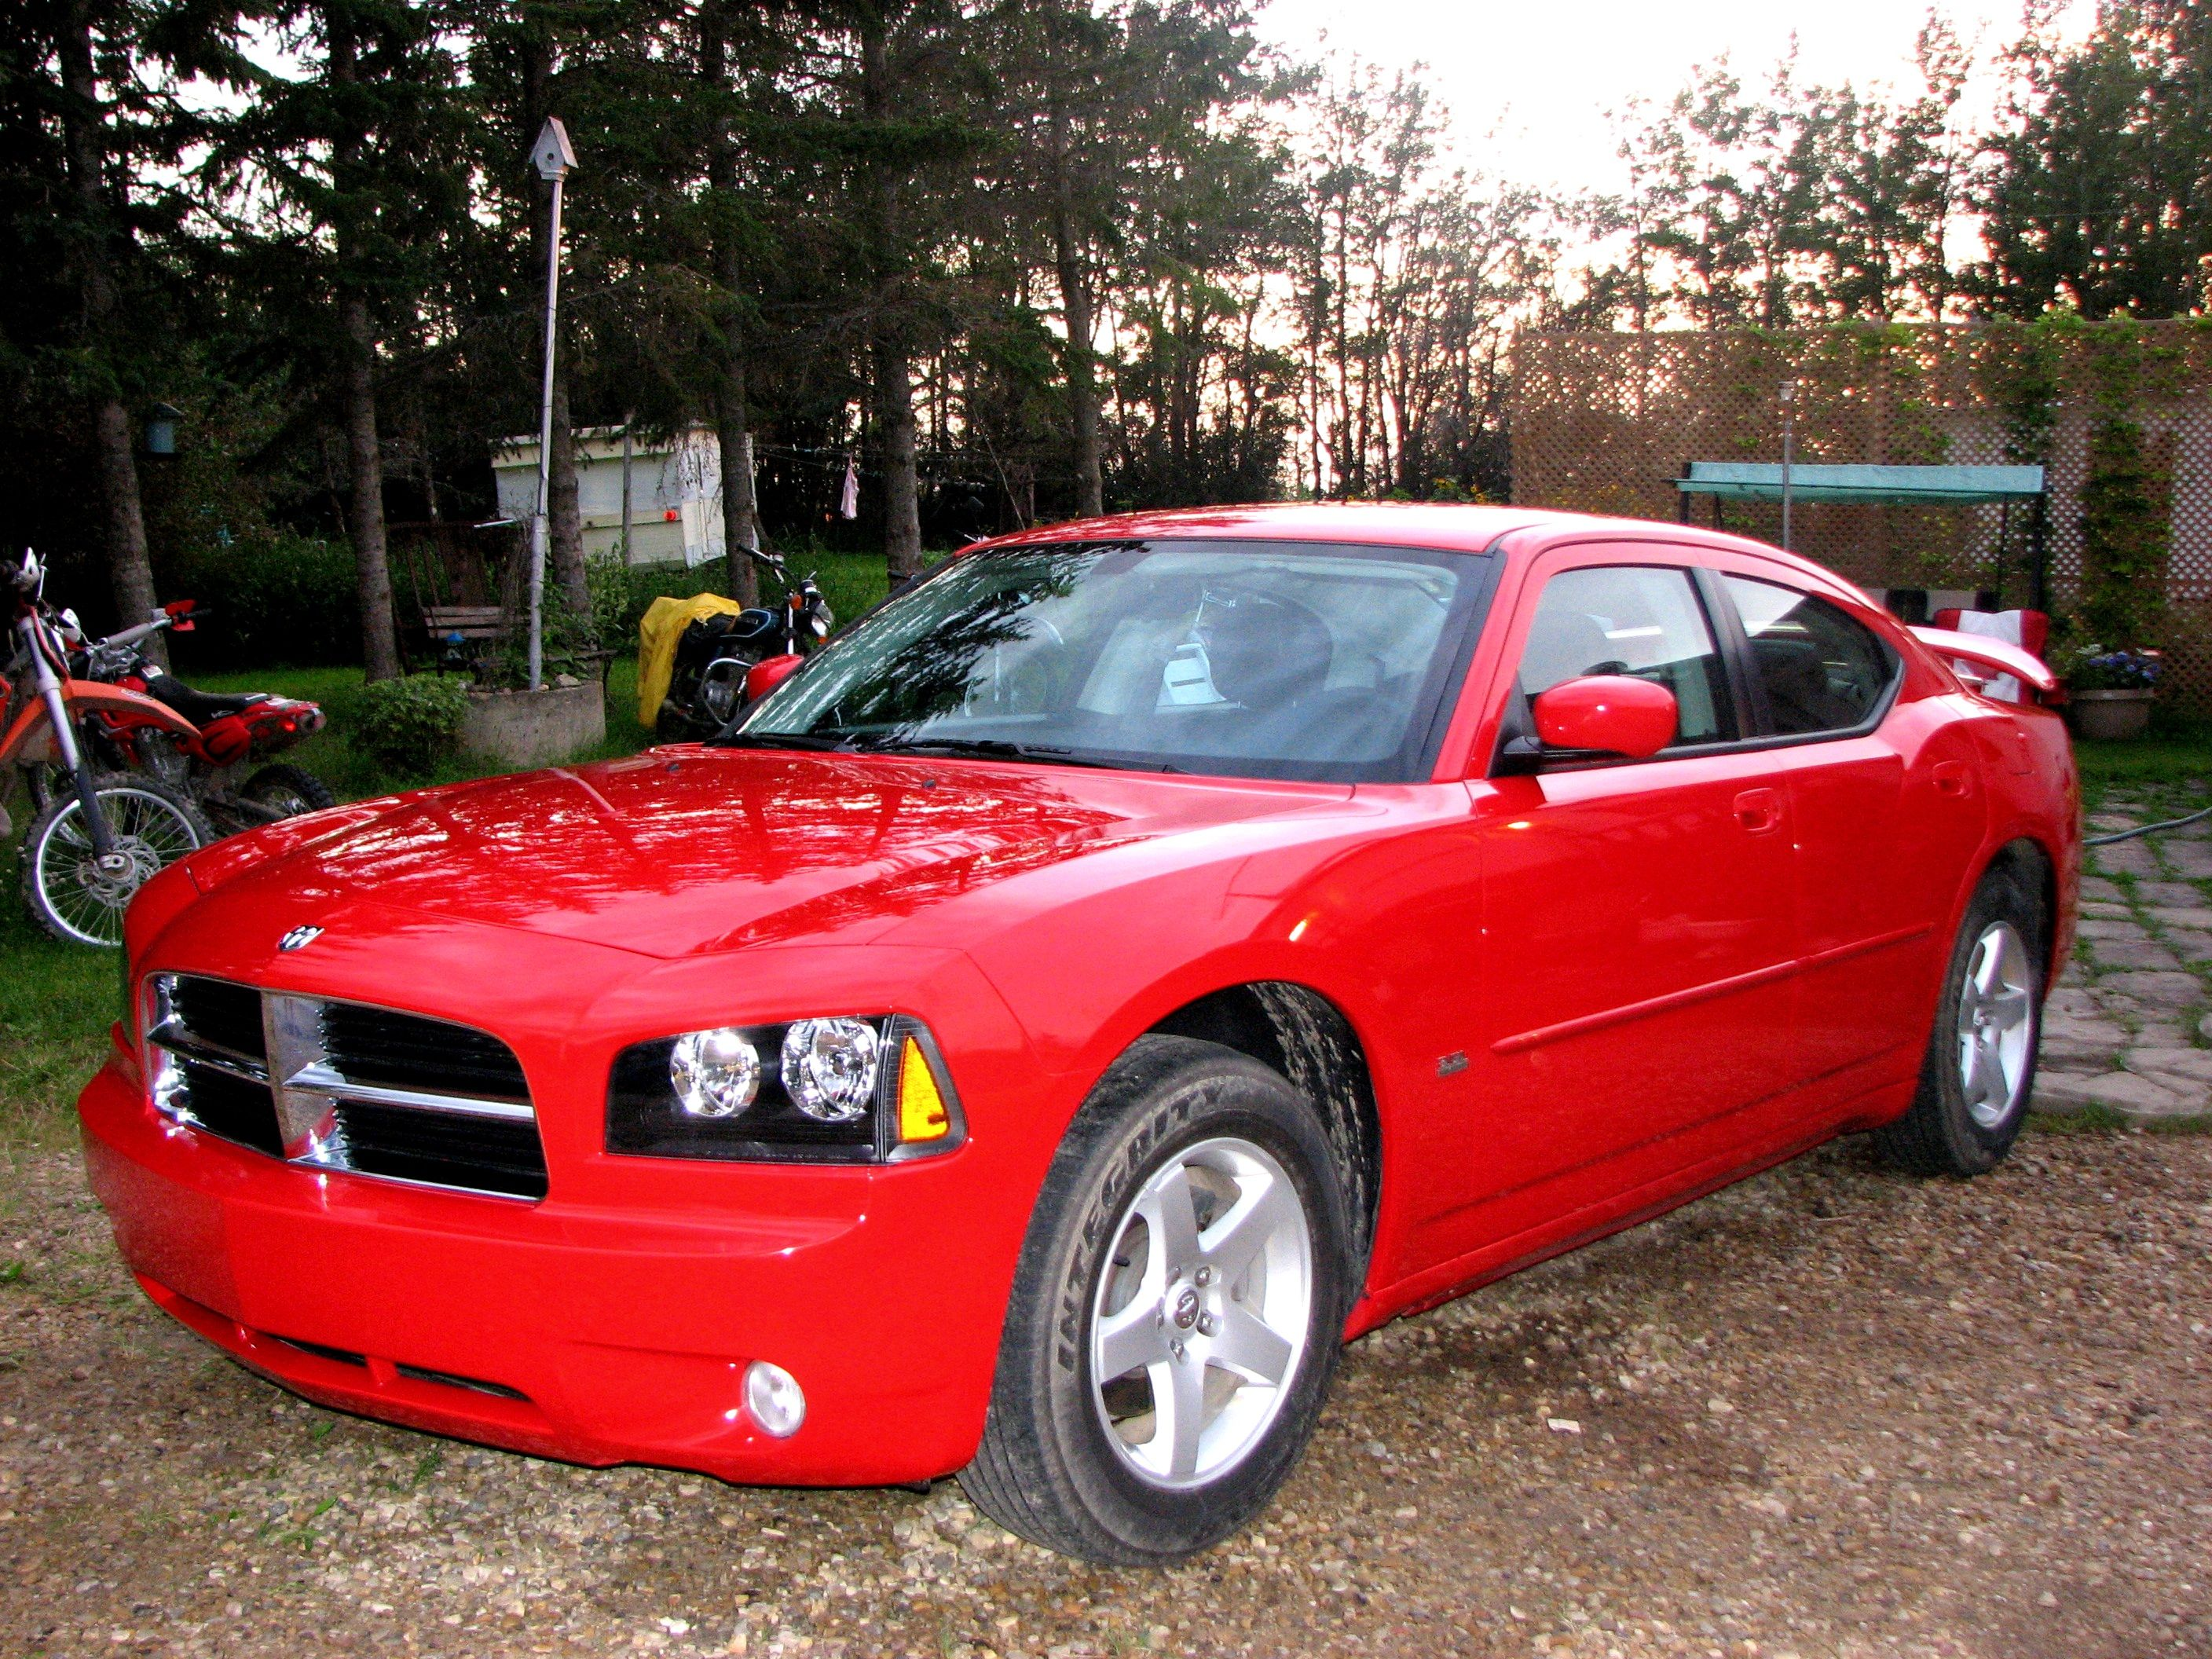 2010 dodge charger sxt in torred is is a really sharp car